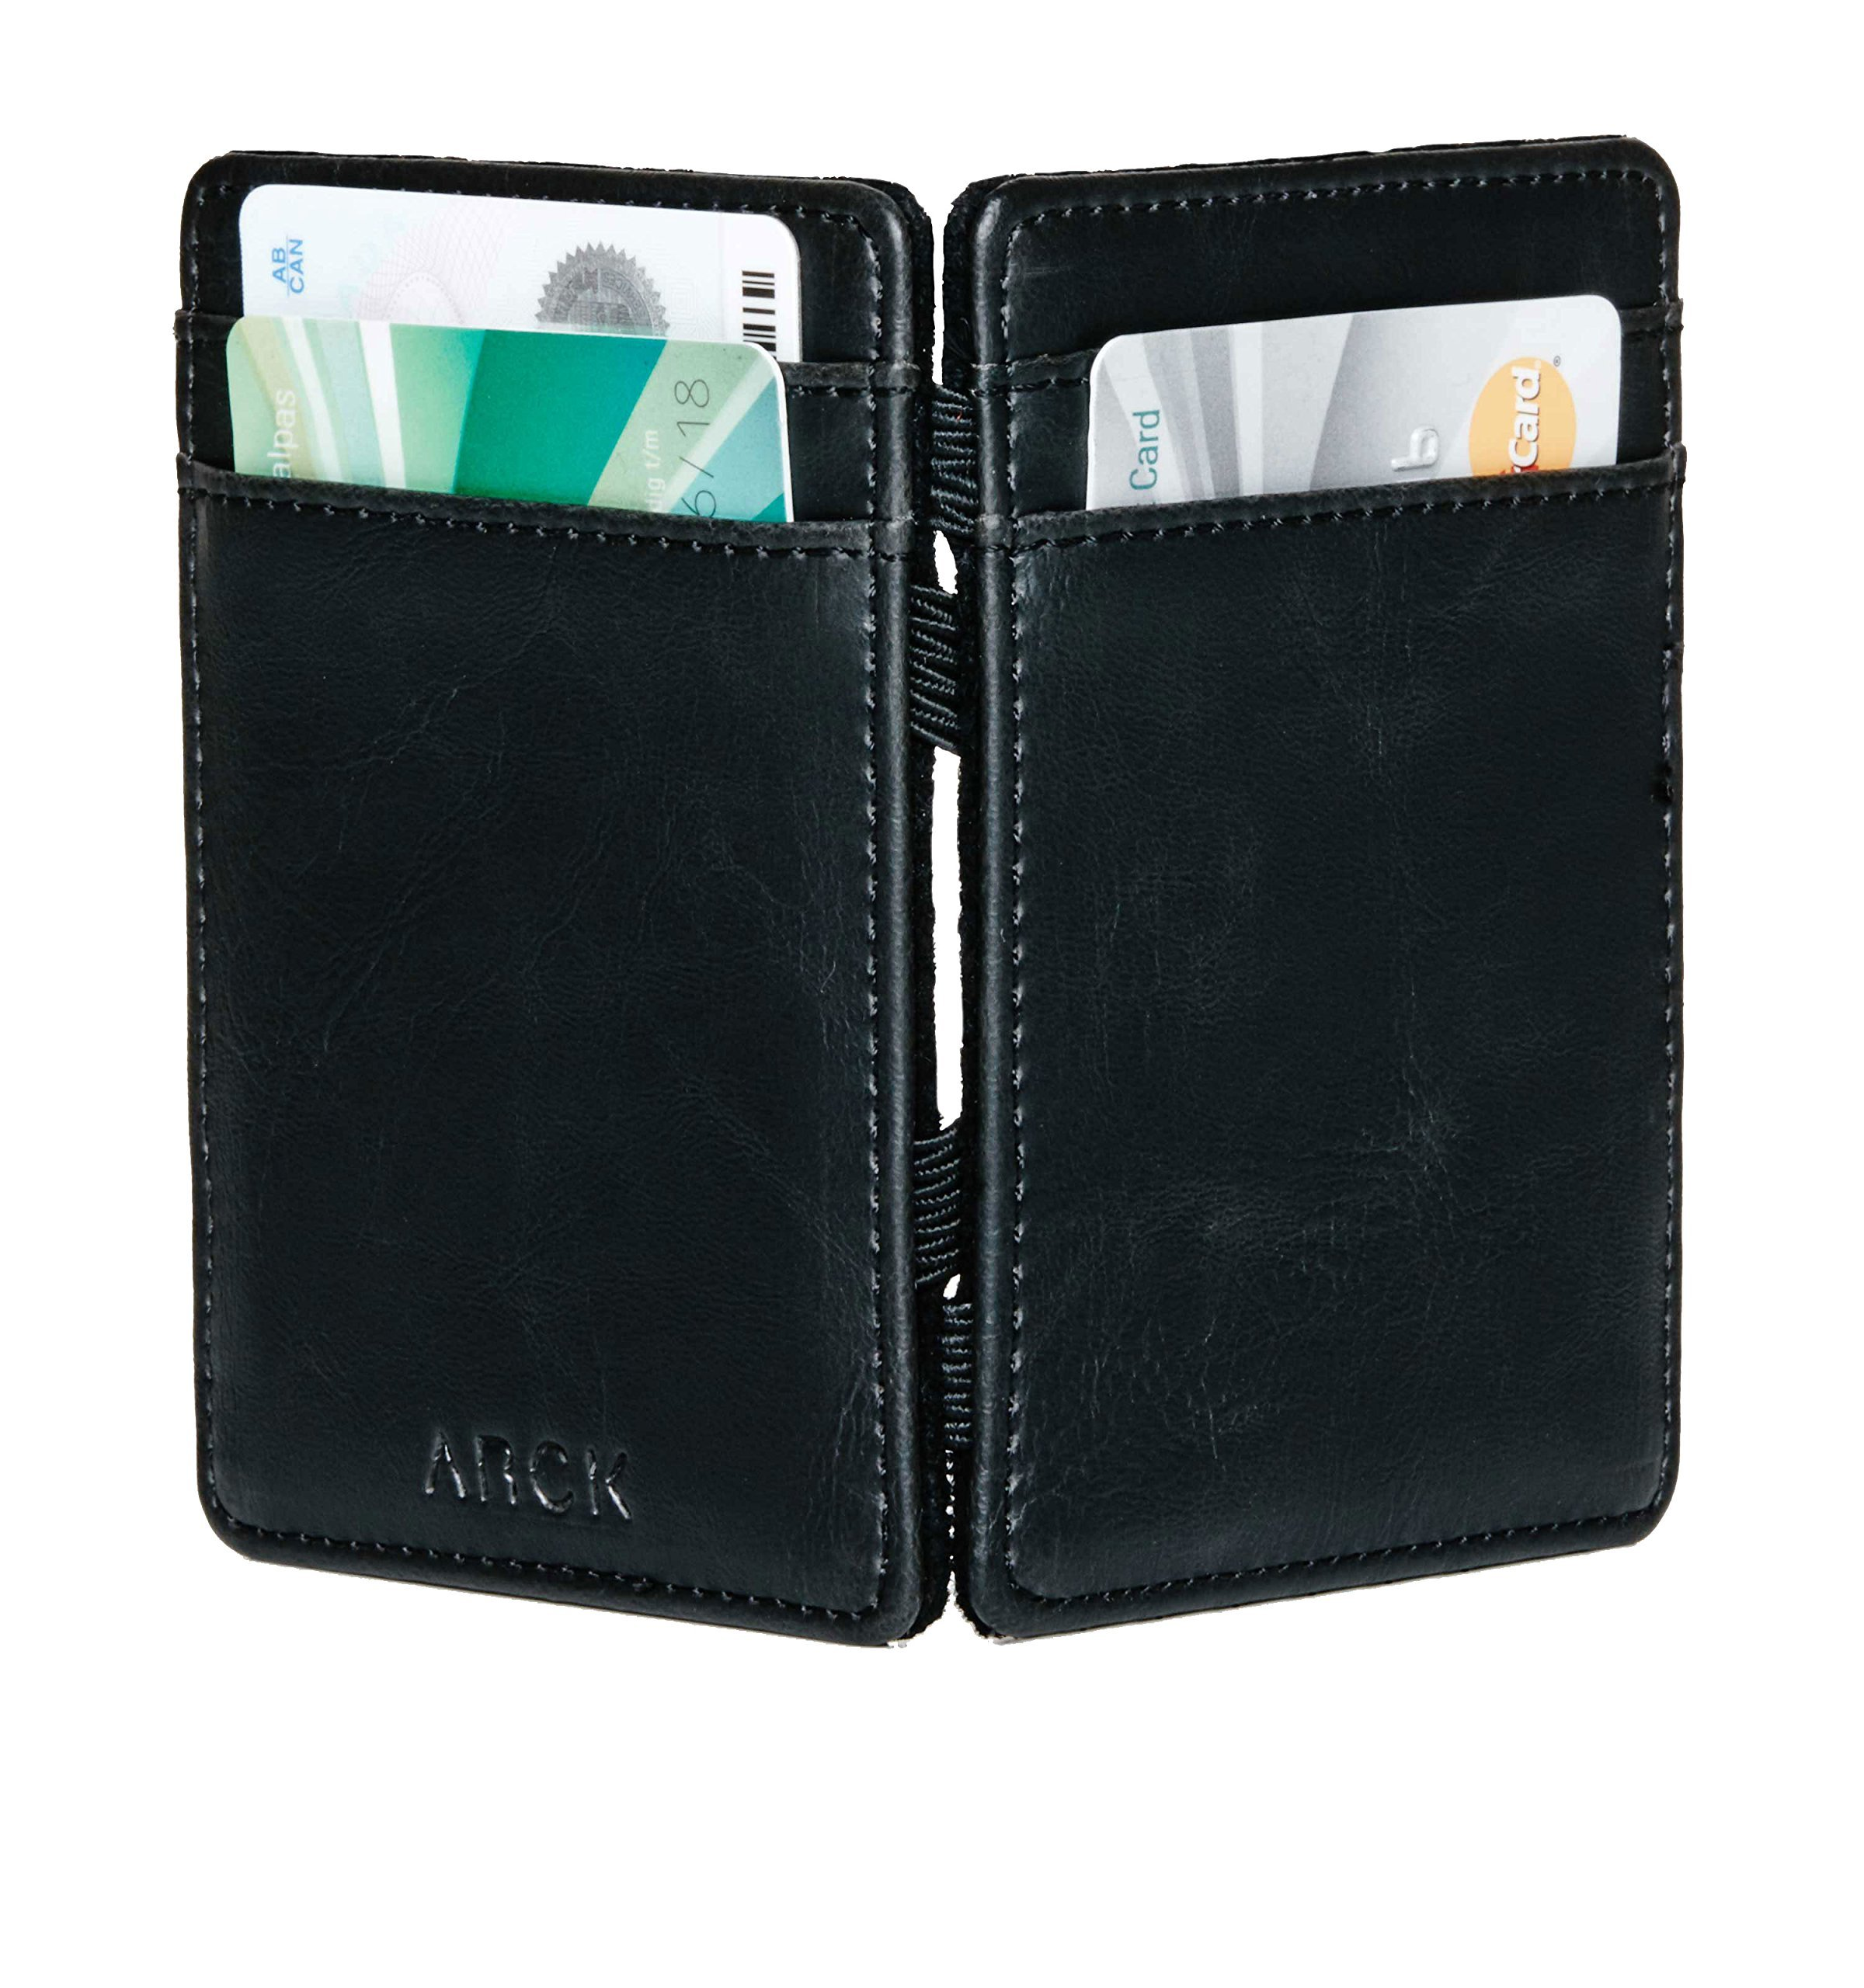 ARCK Ultra Slim Magic Wallet for Men and Women, Handmade Thin Leather Card Wallet, Incl. RFID Protection (Black) - Great Gift Idea